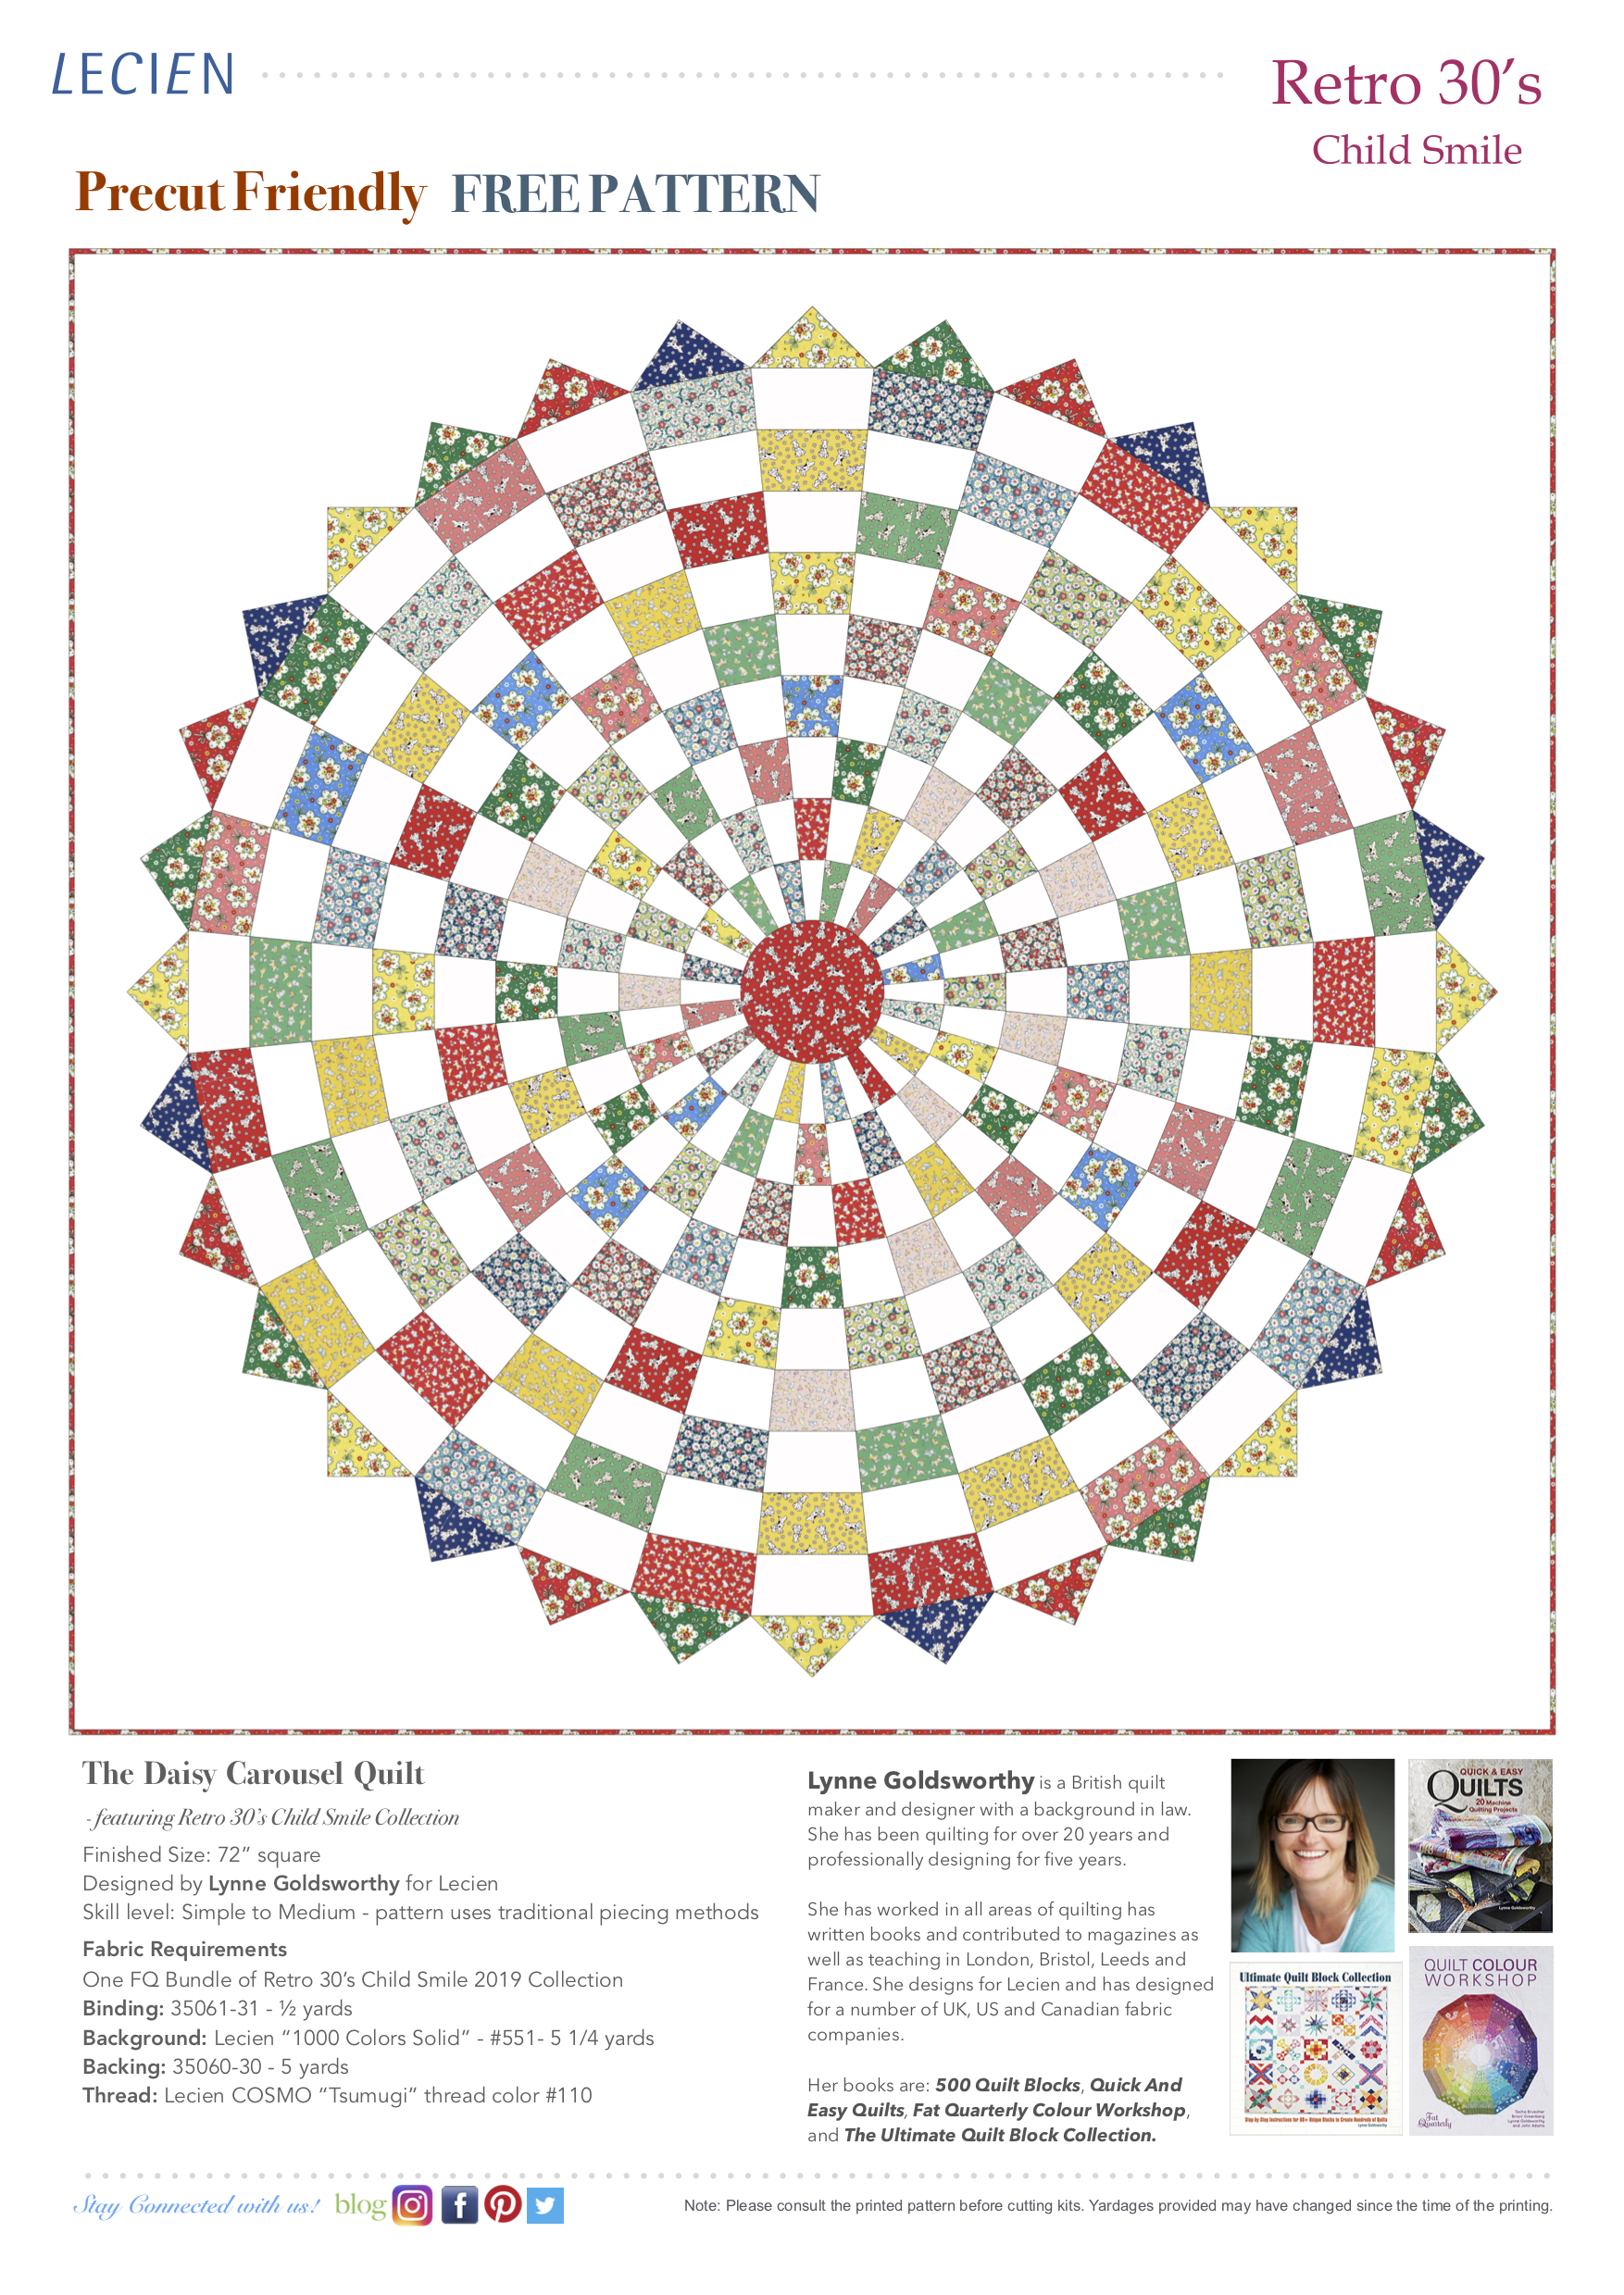 The Daisy Carousel Quilt featuring Retro 30's Child Smile Collection